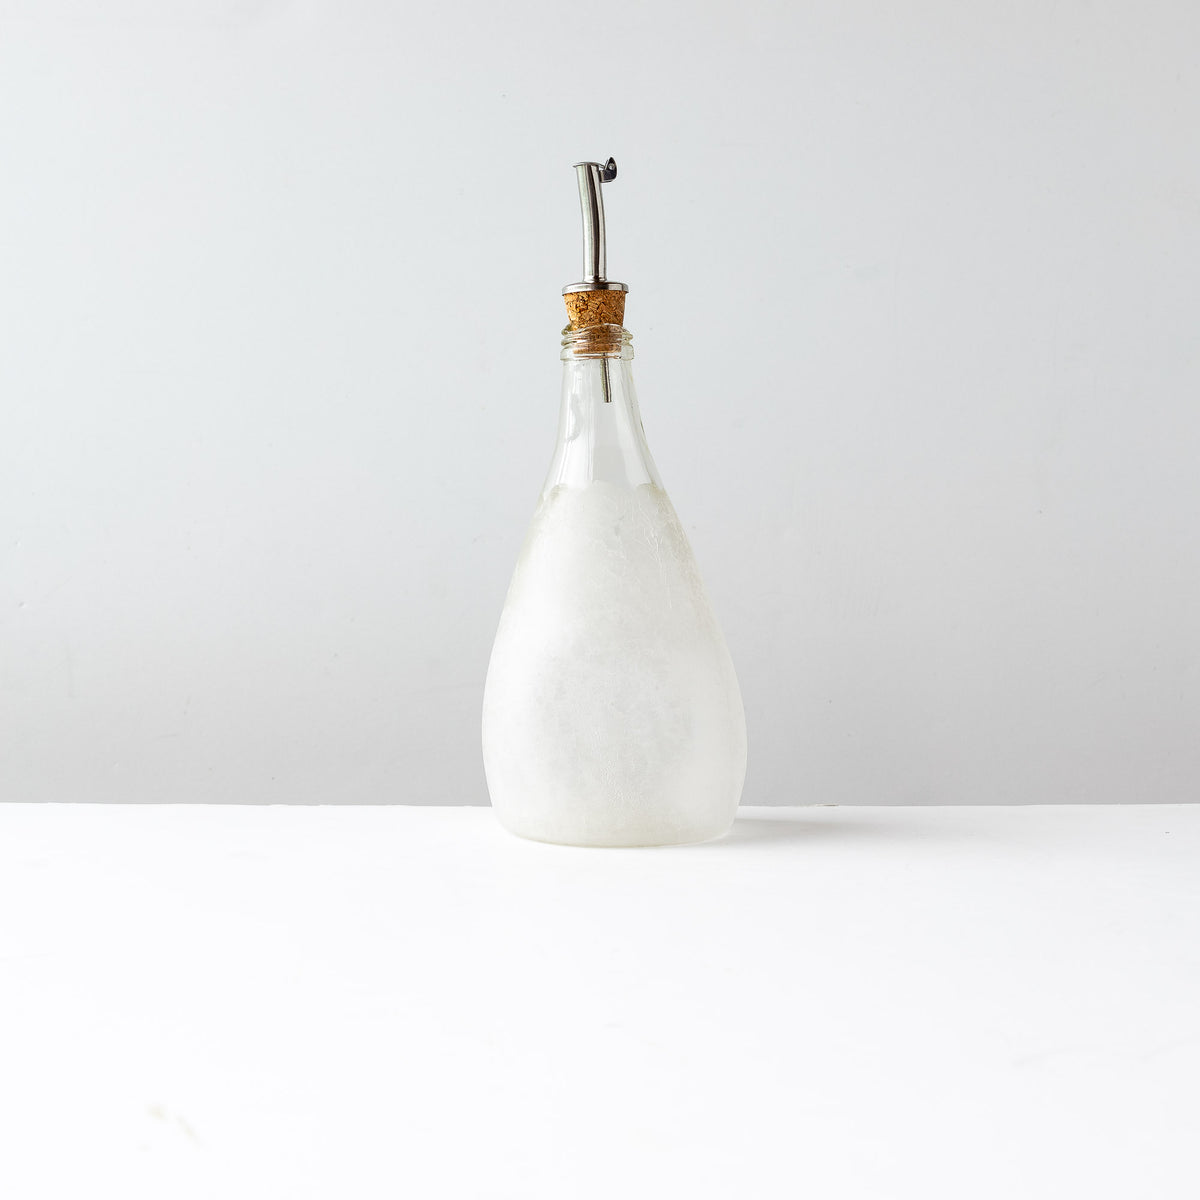 Front View - Latté Texture - Hand Blown Glass Oil Dispenser Bottle - Sold by Chic & Basta